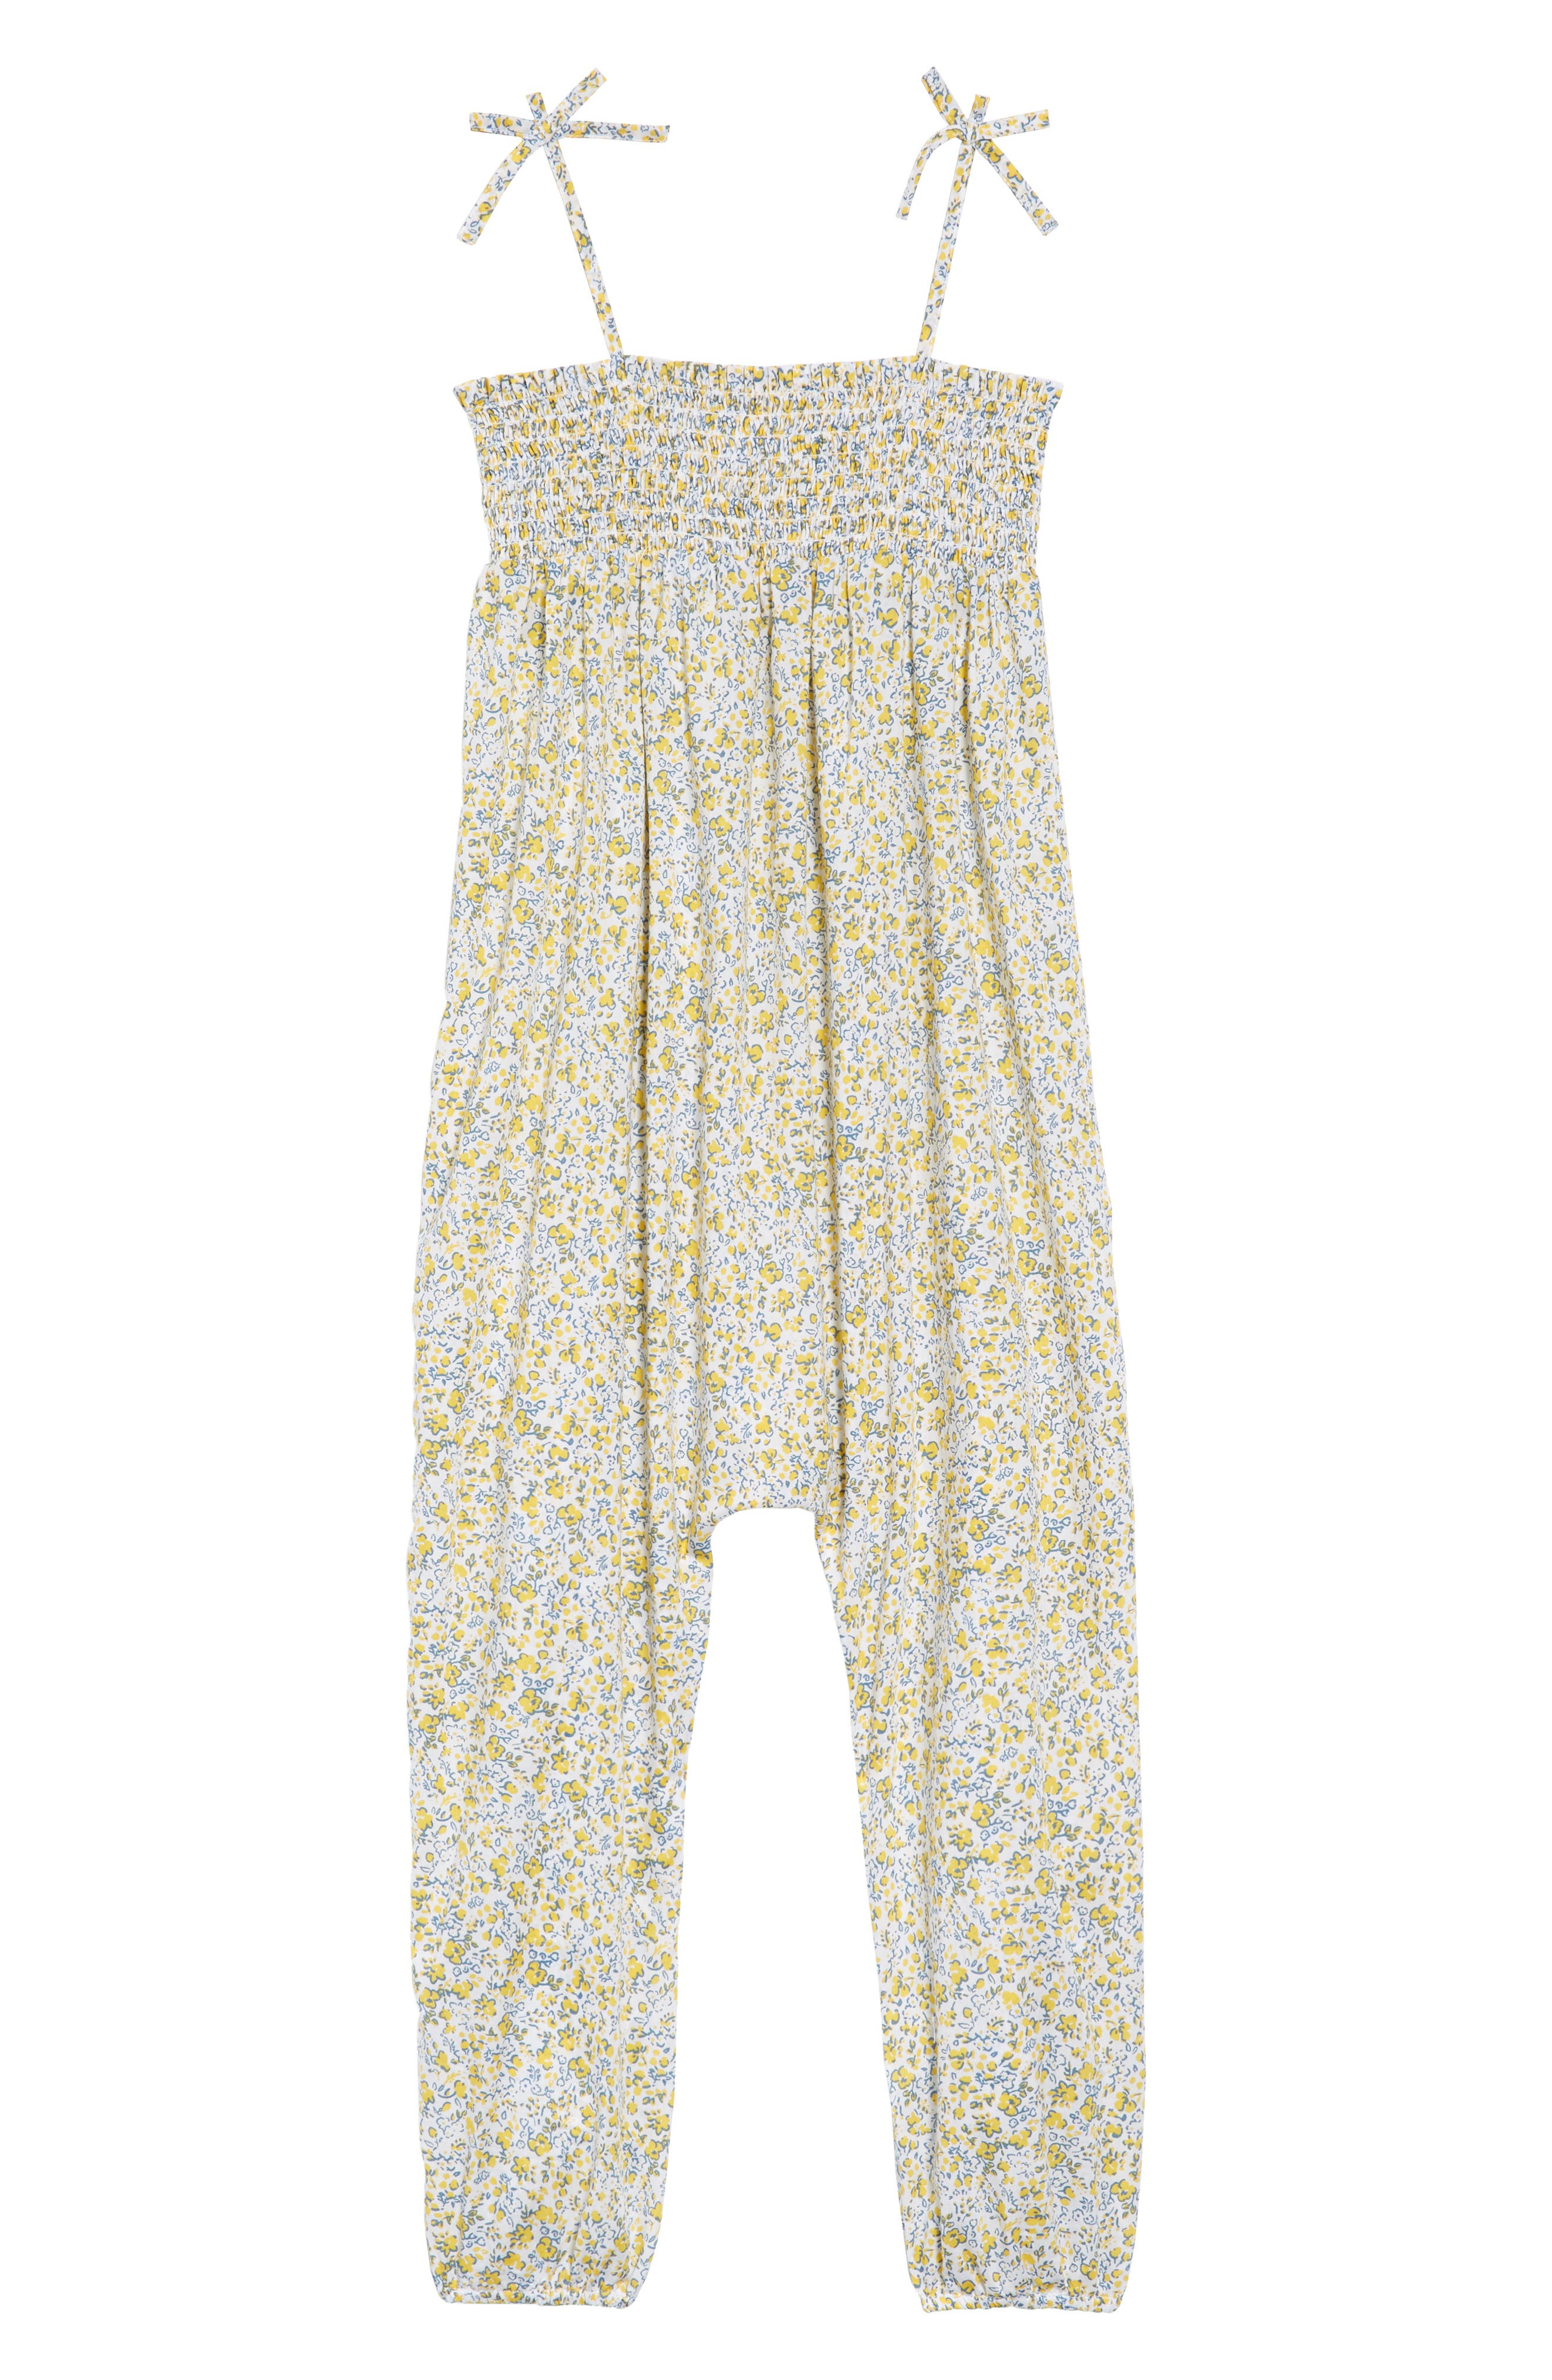 Smocked Ditzy Floral Romper,                         Main,                         color, White- Yellow Tonal Ditsy